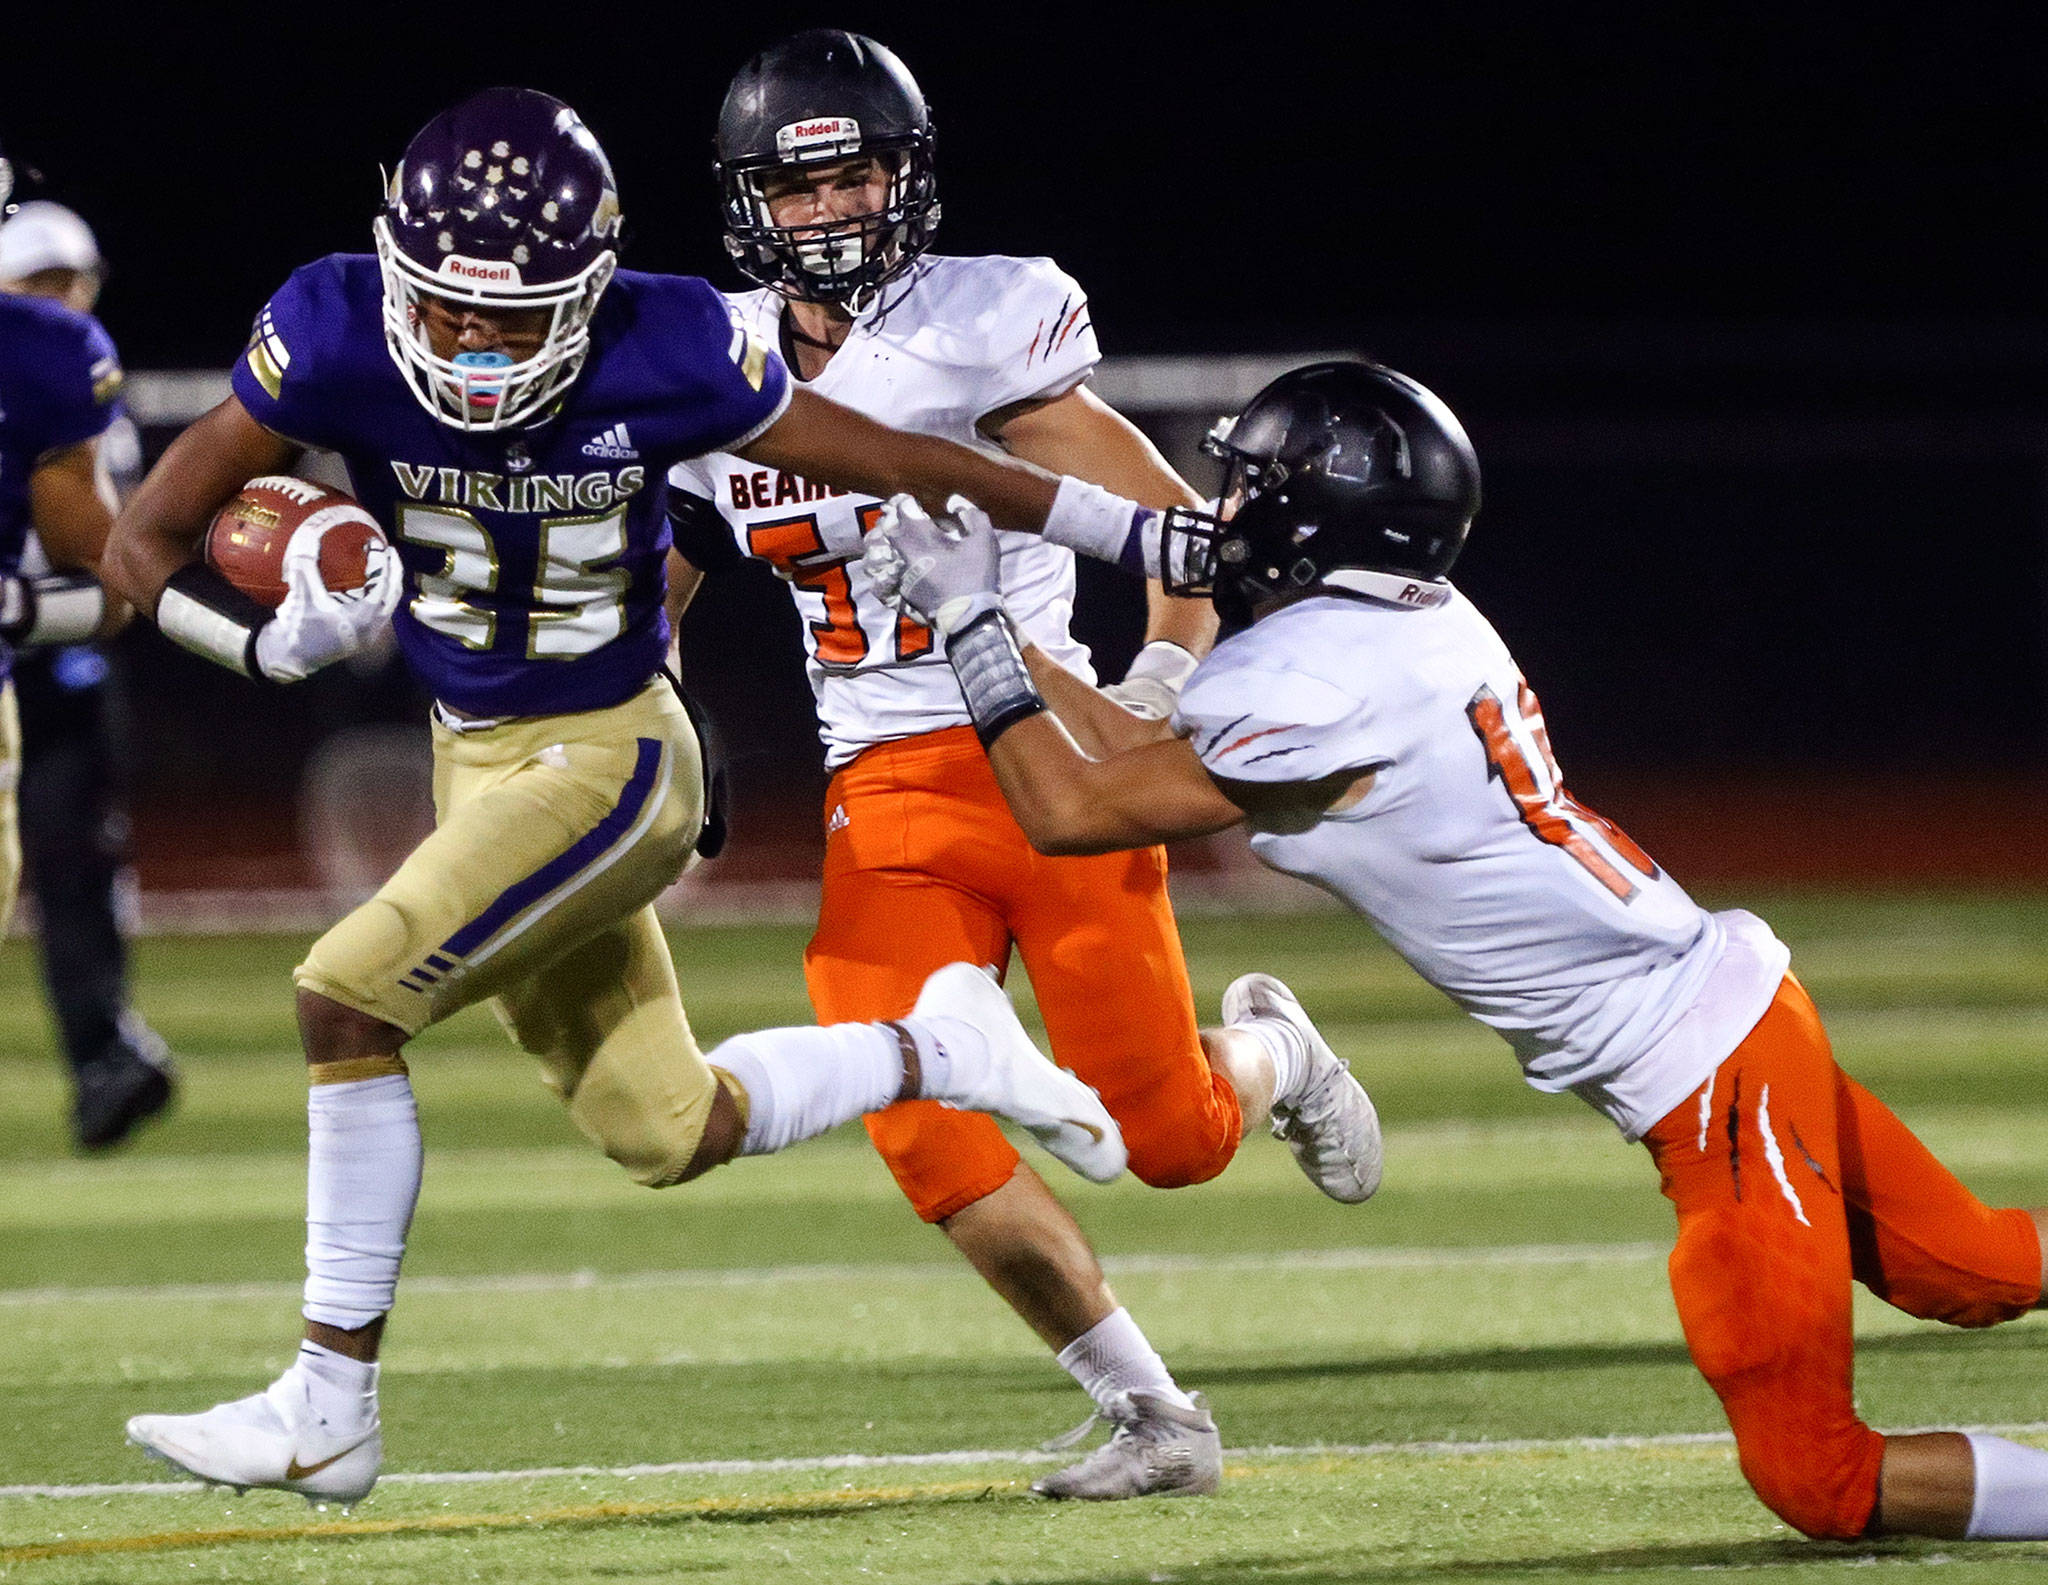 Lake Stevens obliterated opponents nearly all season, winning its first 10 games by an average margin of 49.5 points. (Kevin Clark / The Herald)